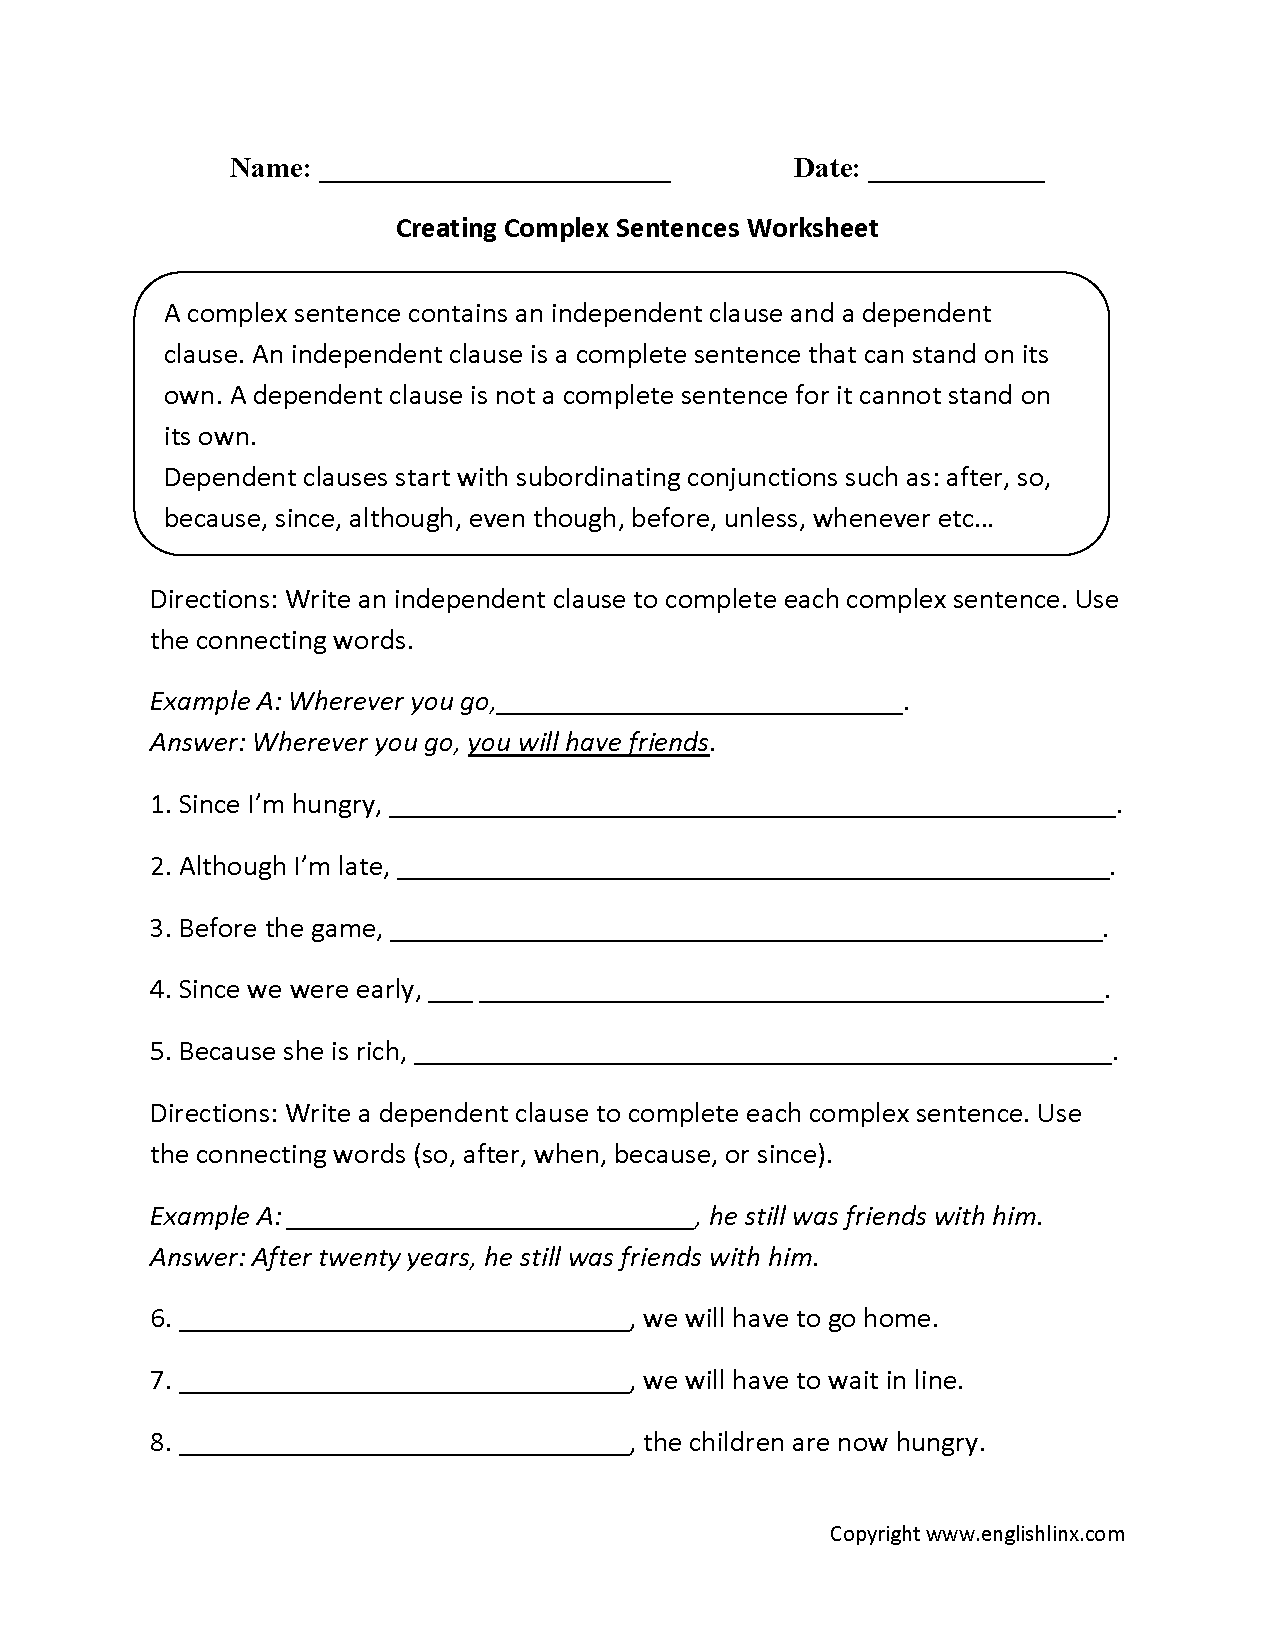 Creating Complex Sentences Worksheet